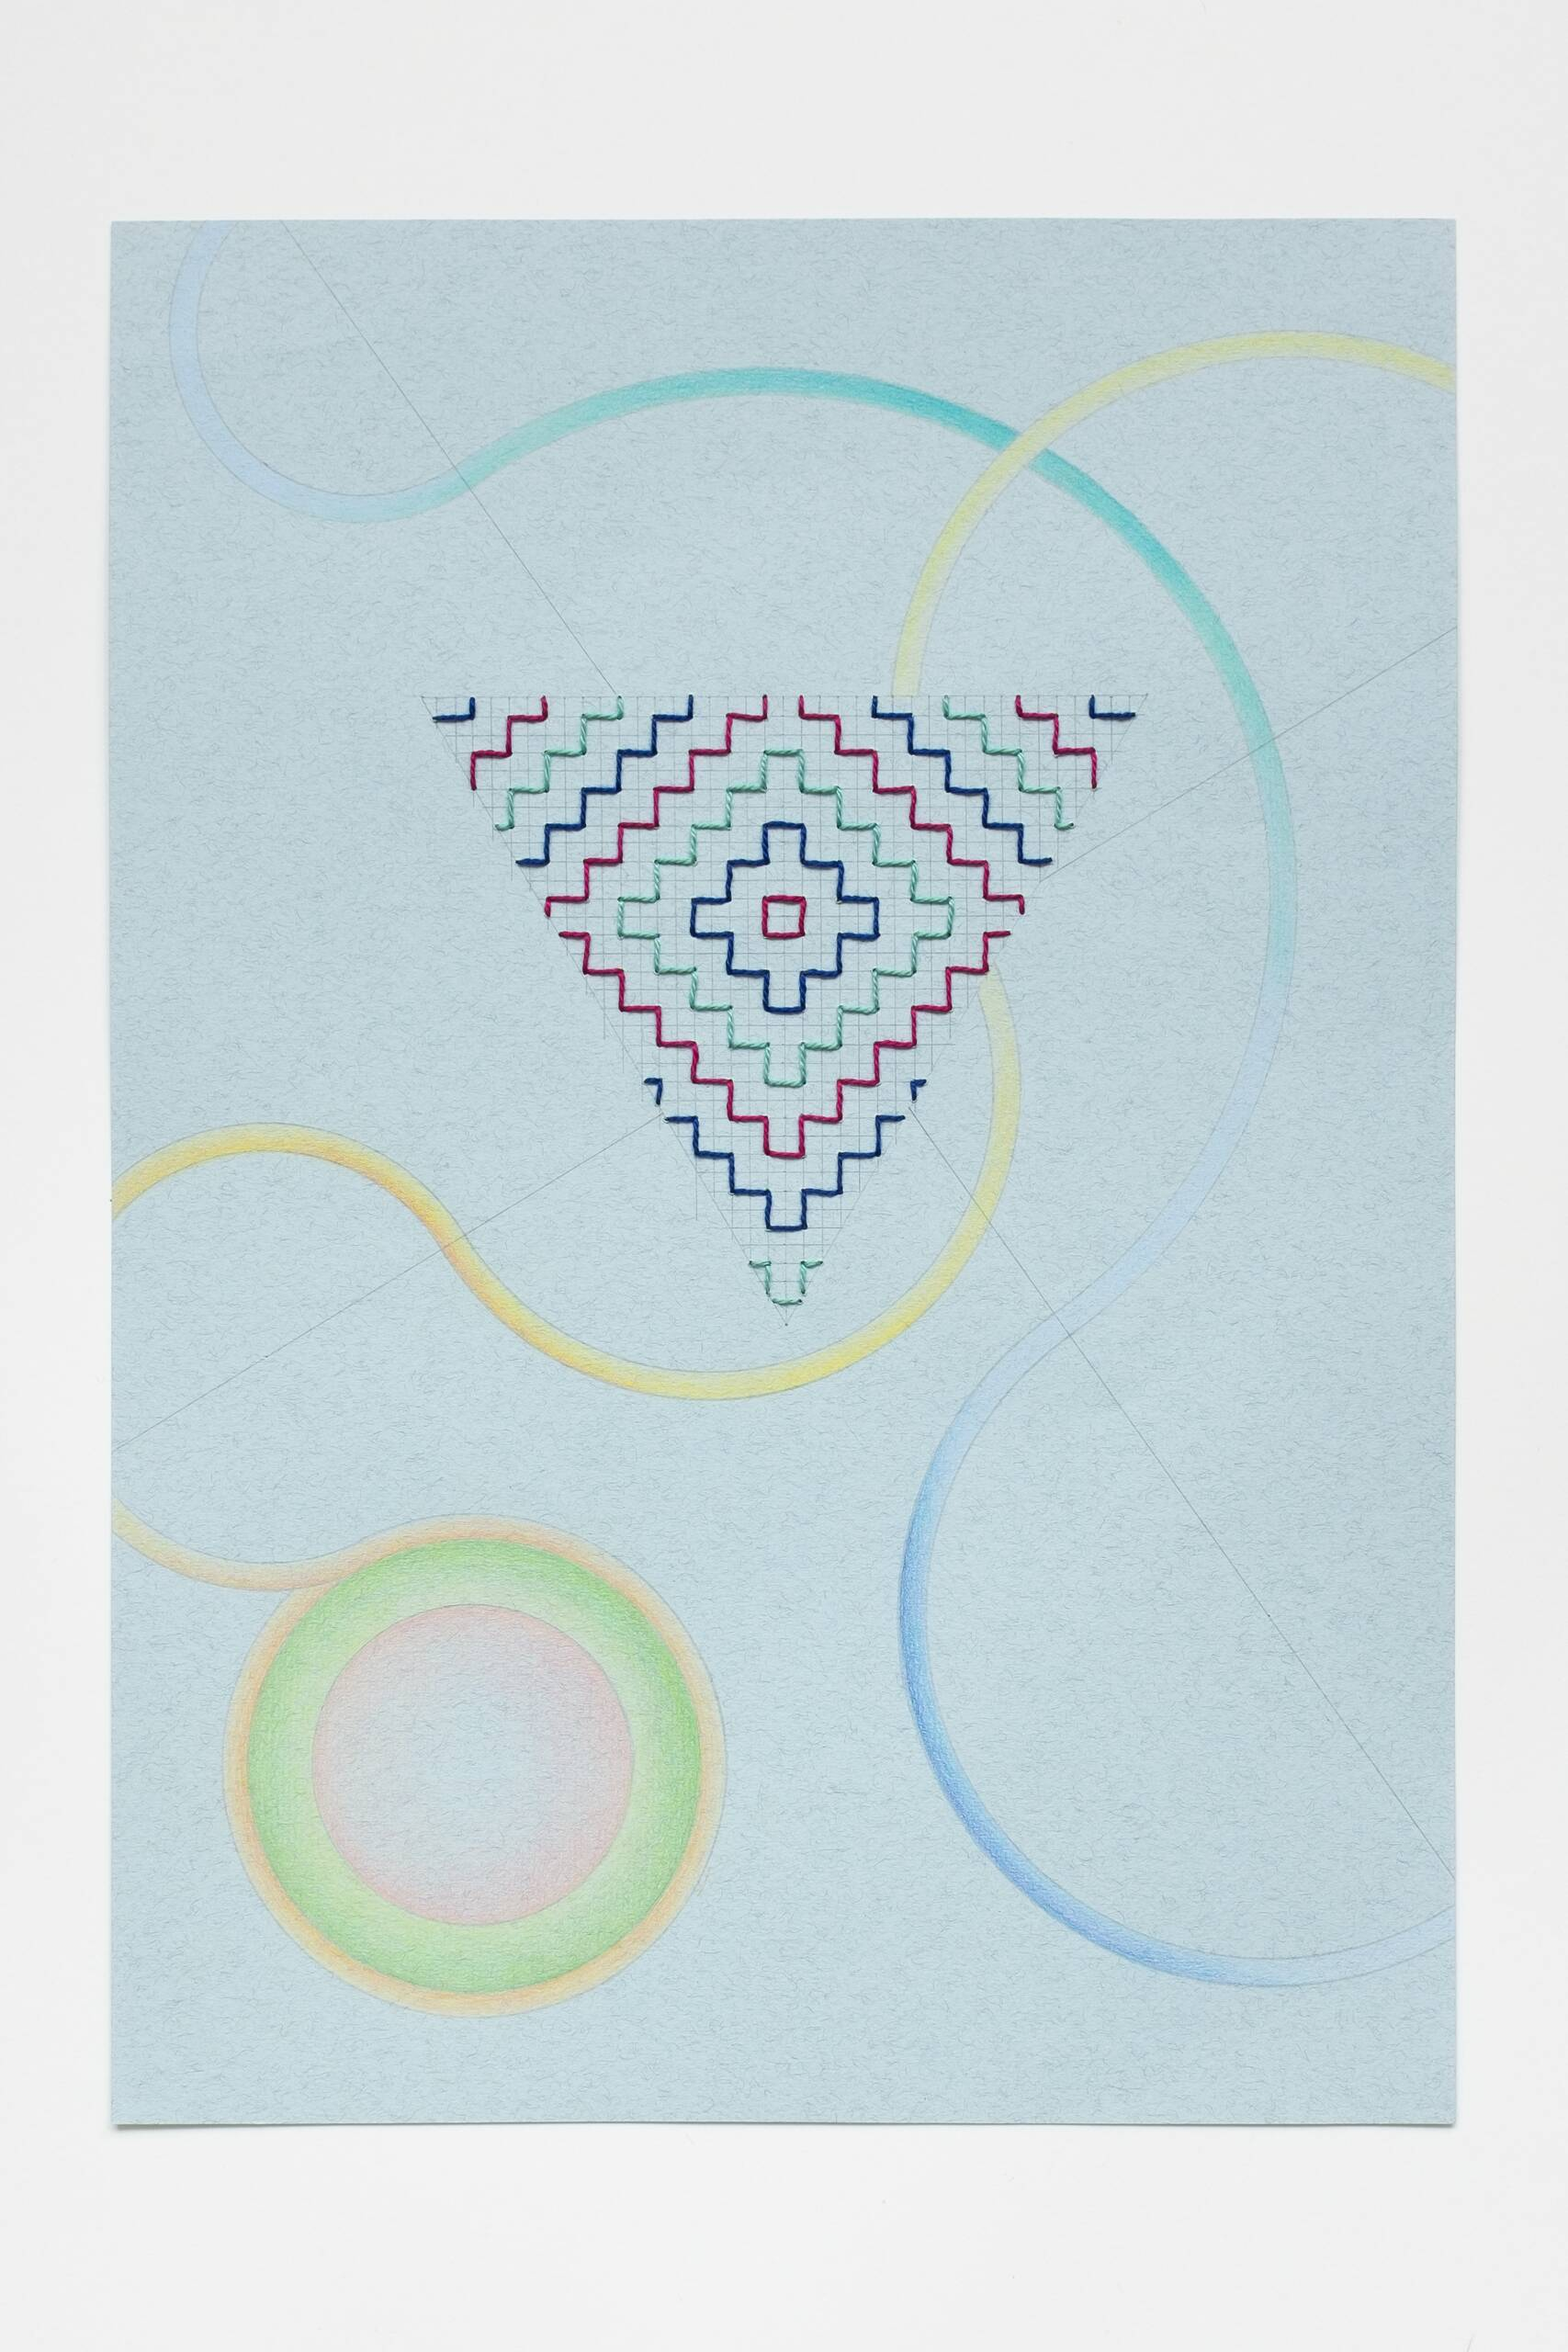 Sashiko triangle [navy-mauve-teal on blue], Hand-embroidered cotton thread, pencil and colored pencil on paper, 2020